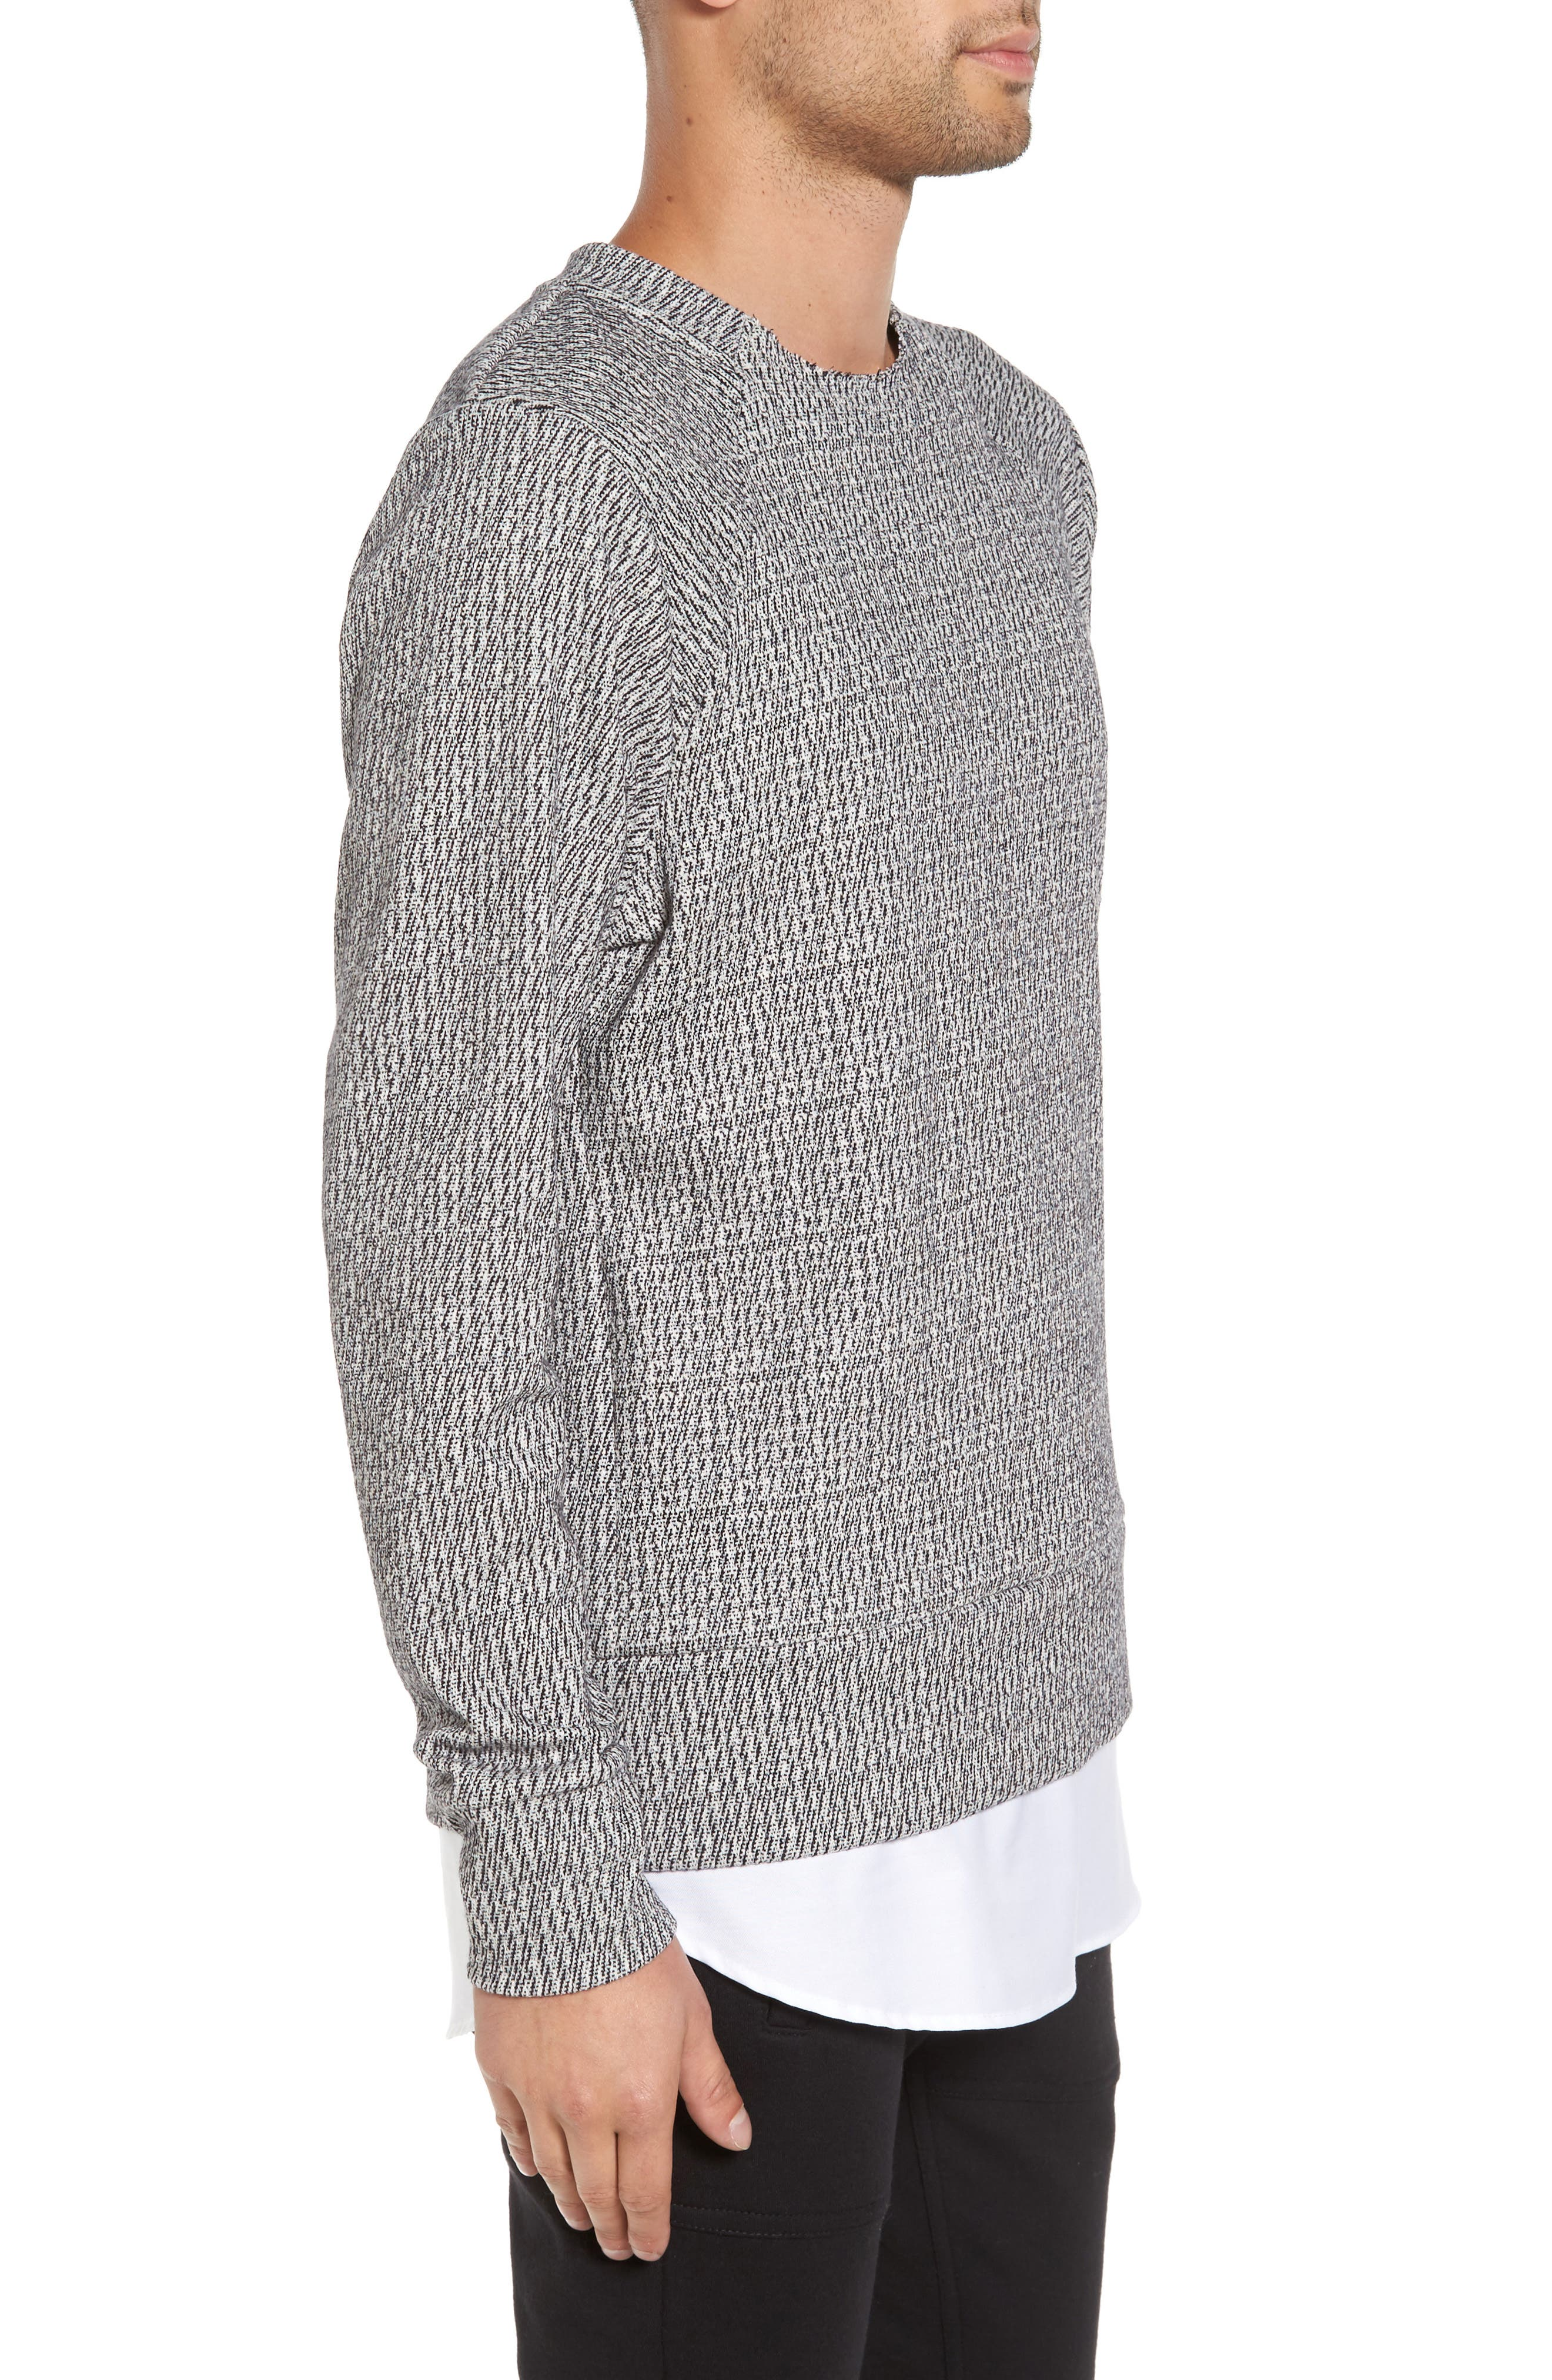 Double Layer Crewneck Sweater,                             Alternate thumbnail 3, color,                             020